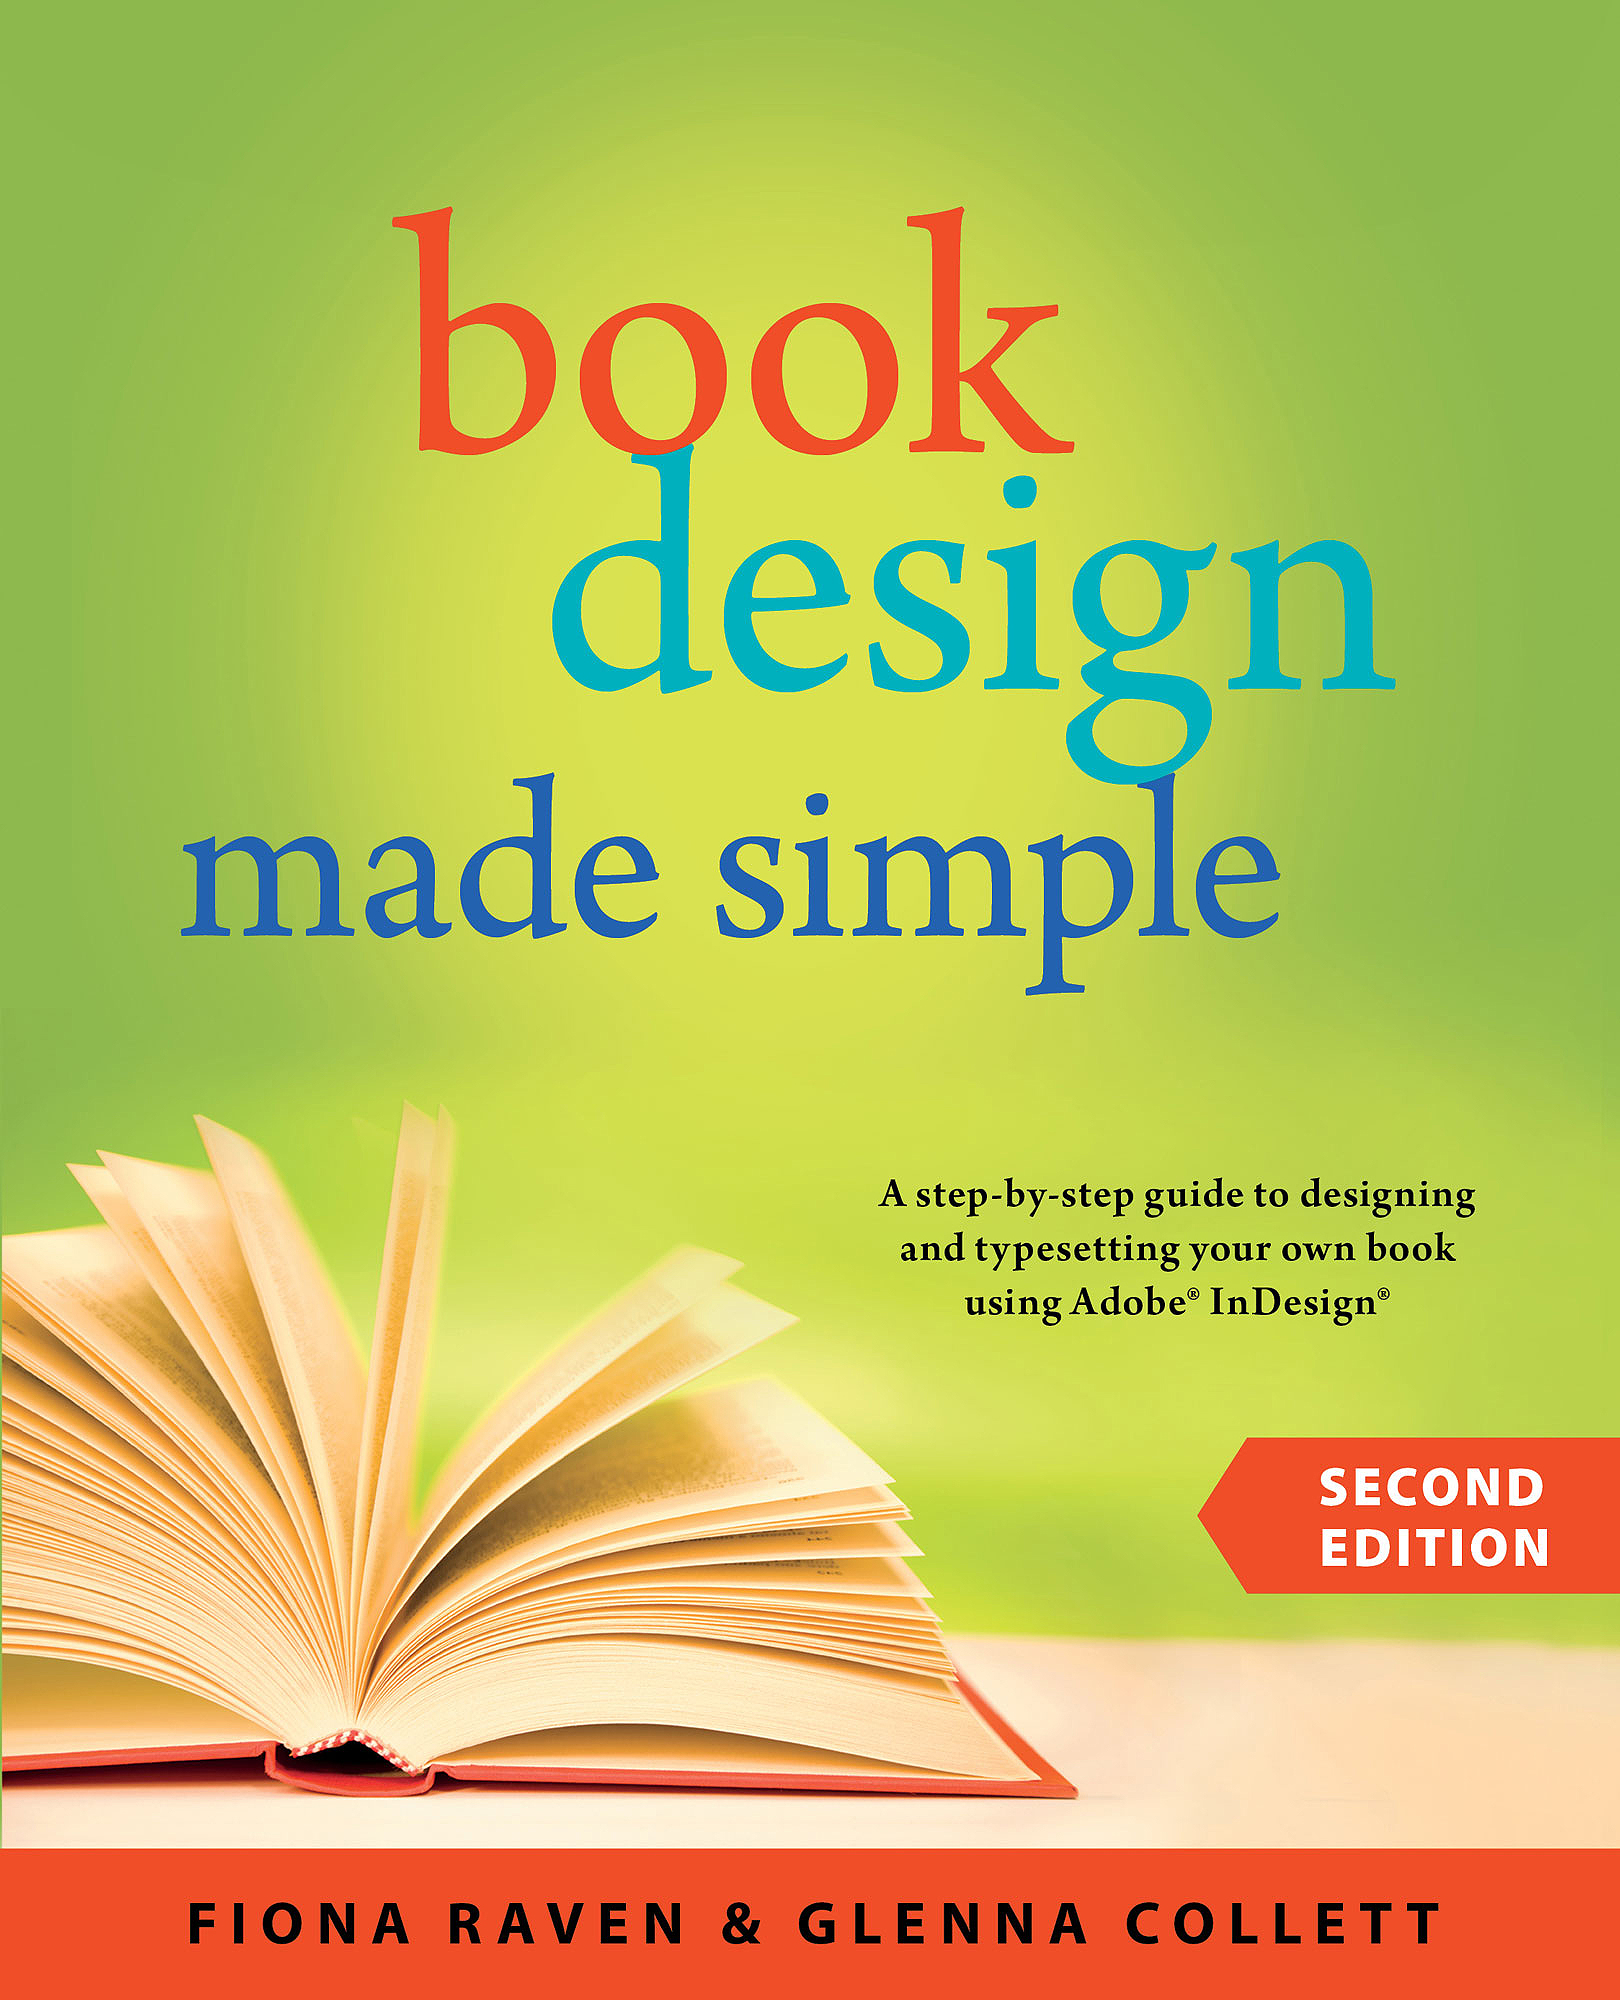 Book Cover Layout Design : Book cover images design made simple